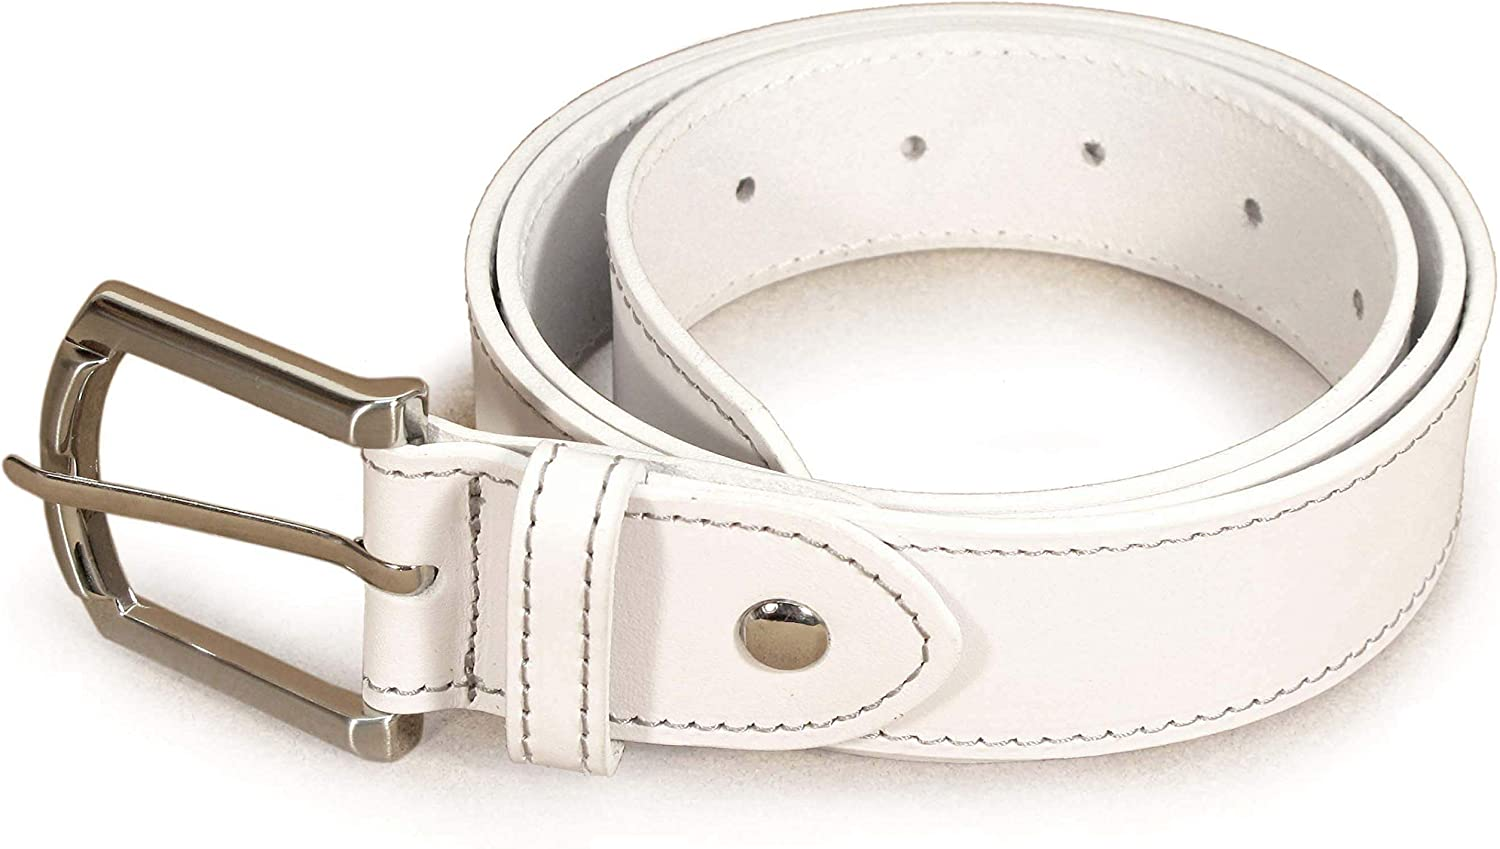 Womens Real Genuine Leather Belt Black Brown White 1.25 Wide S-XL Casual Jeans TU6